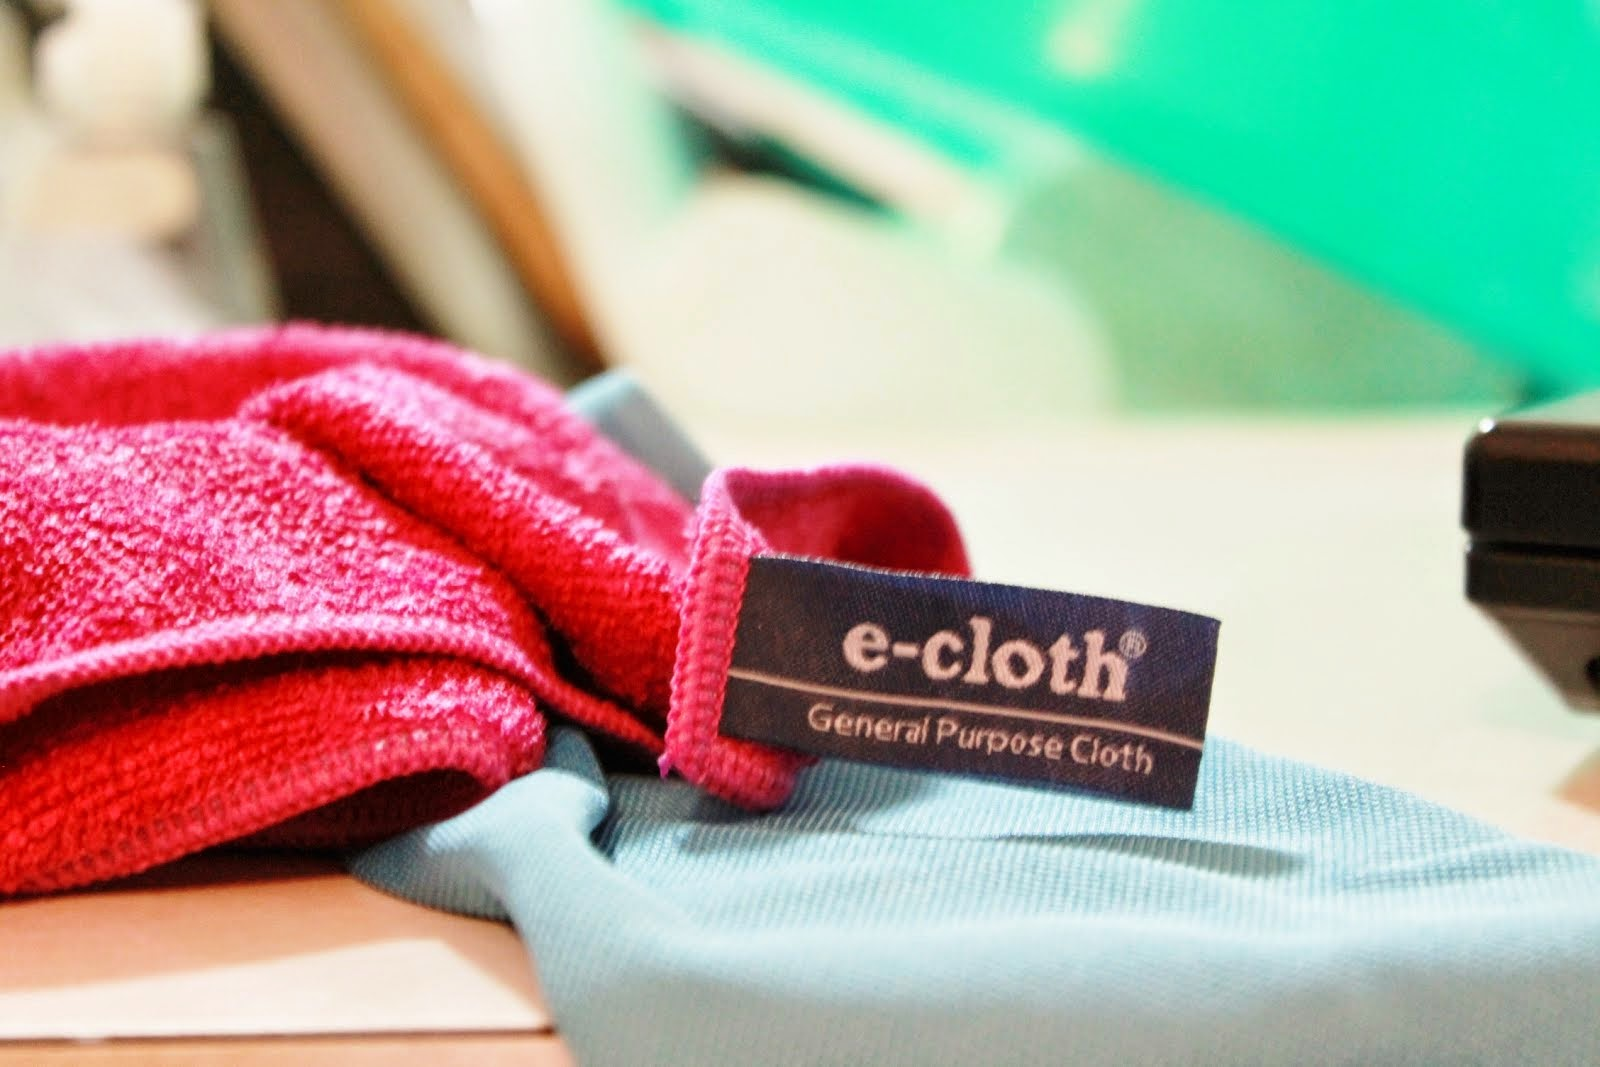 What is e-cloth